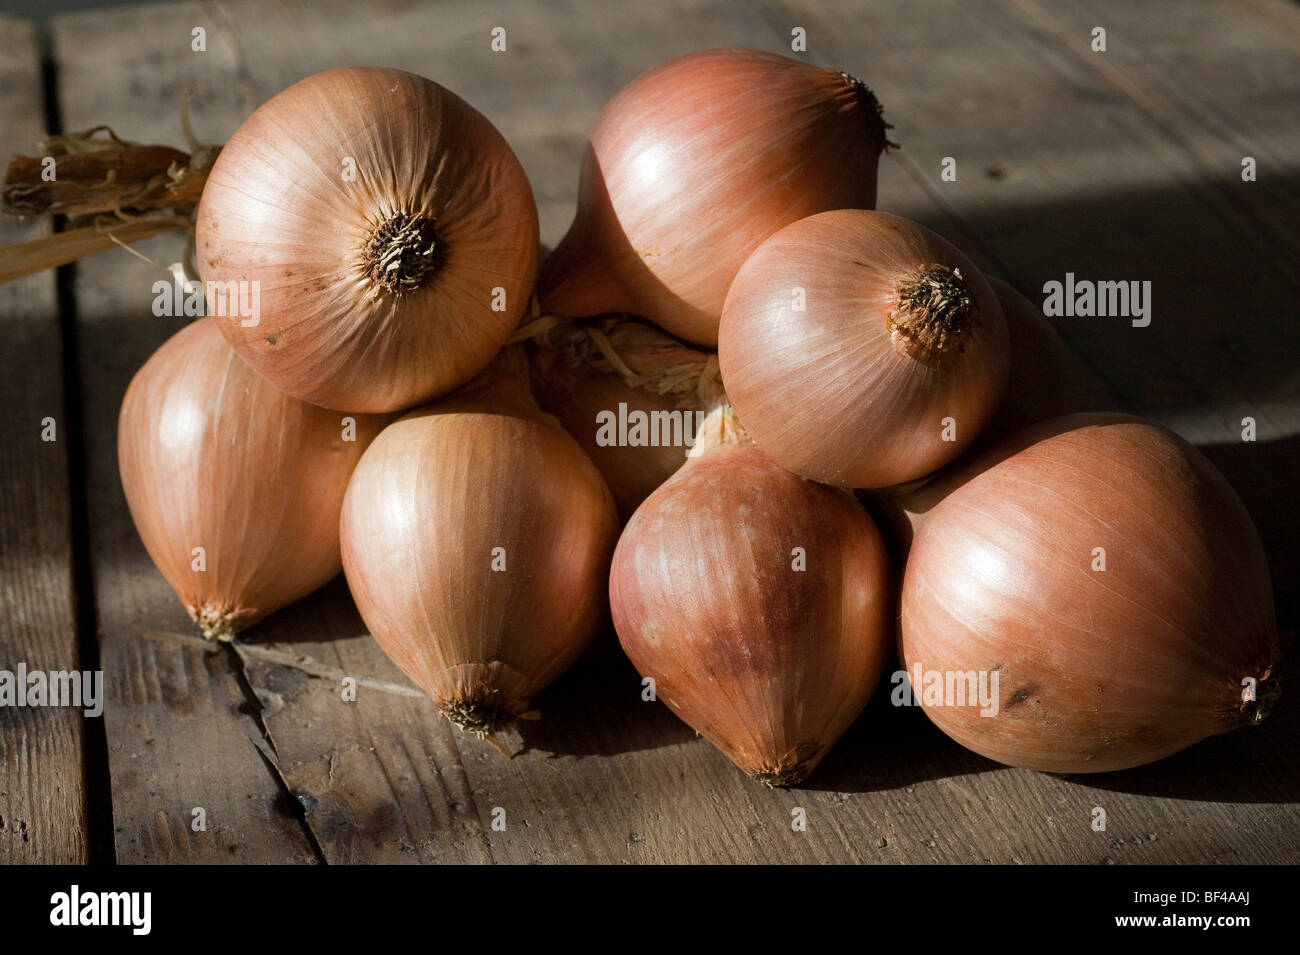 Onions from Roscoff, Brittany, known for their mild taste - Stock Image